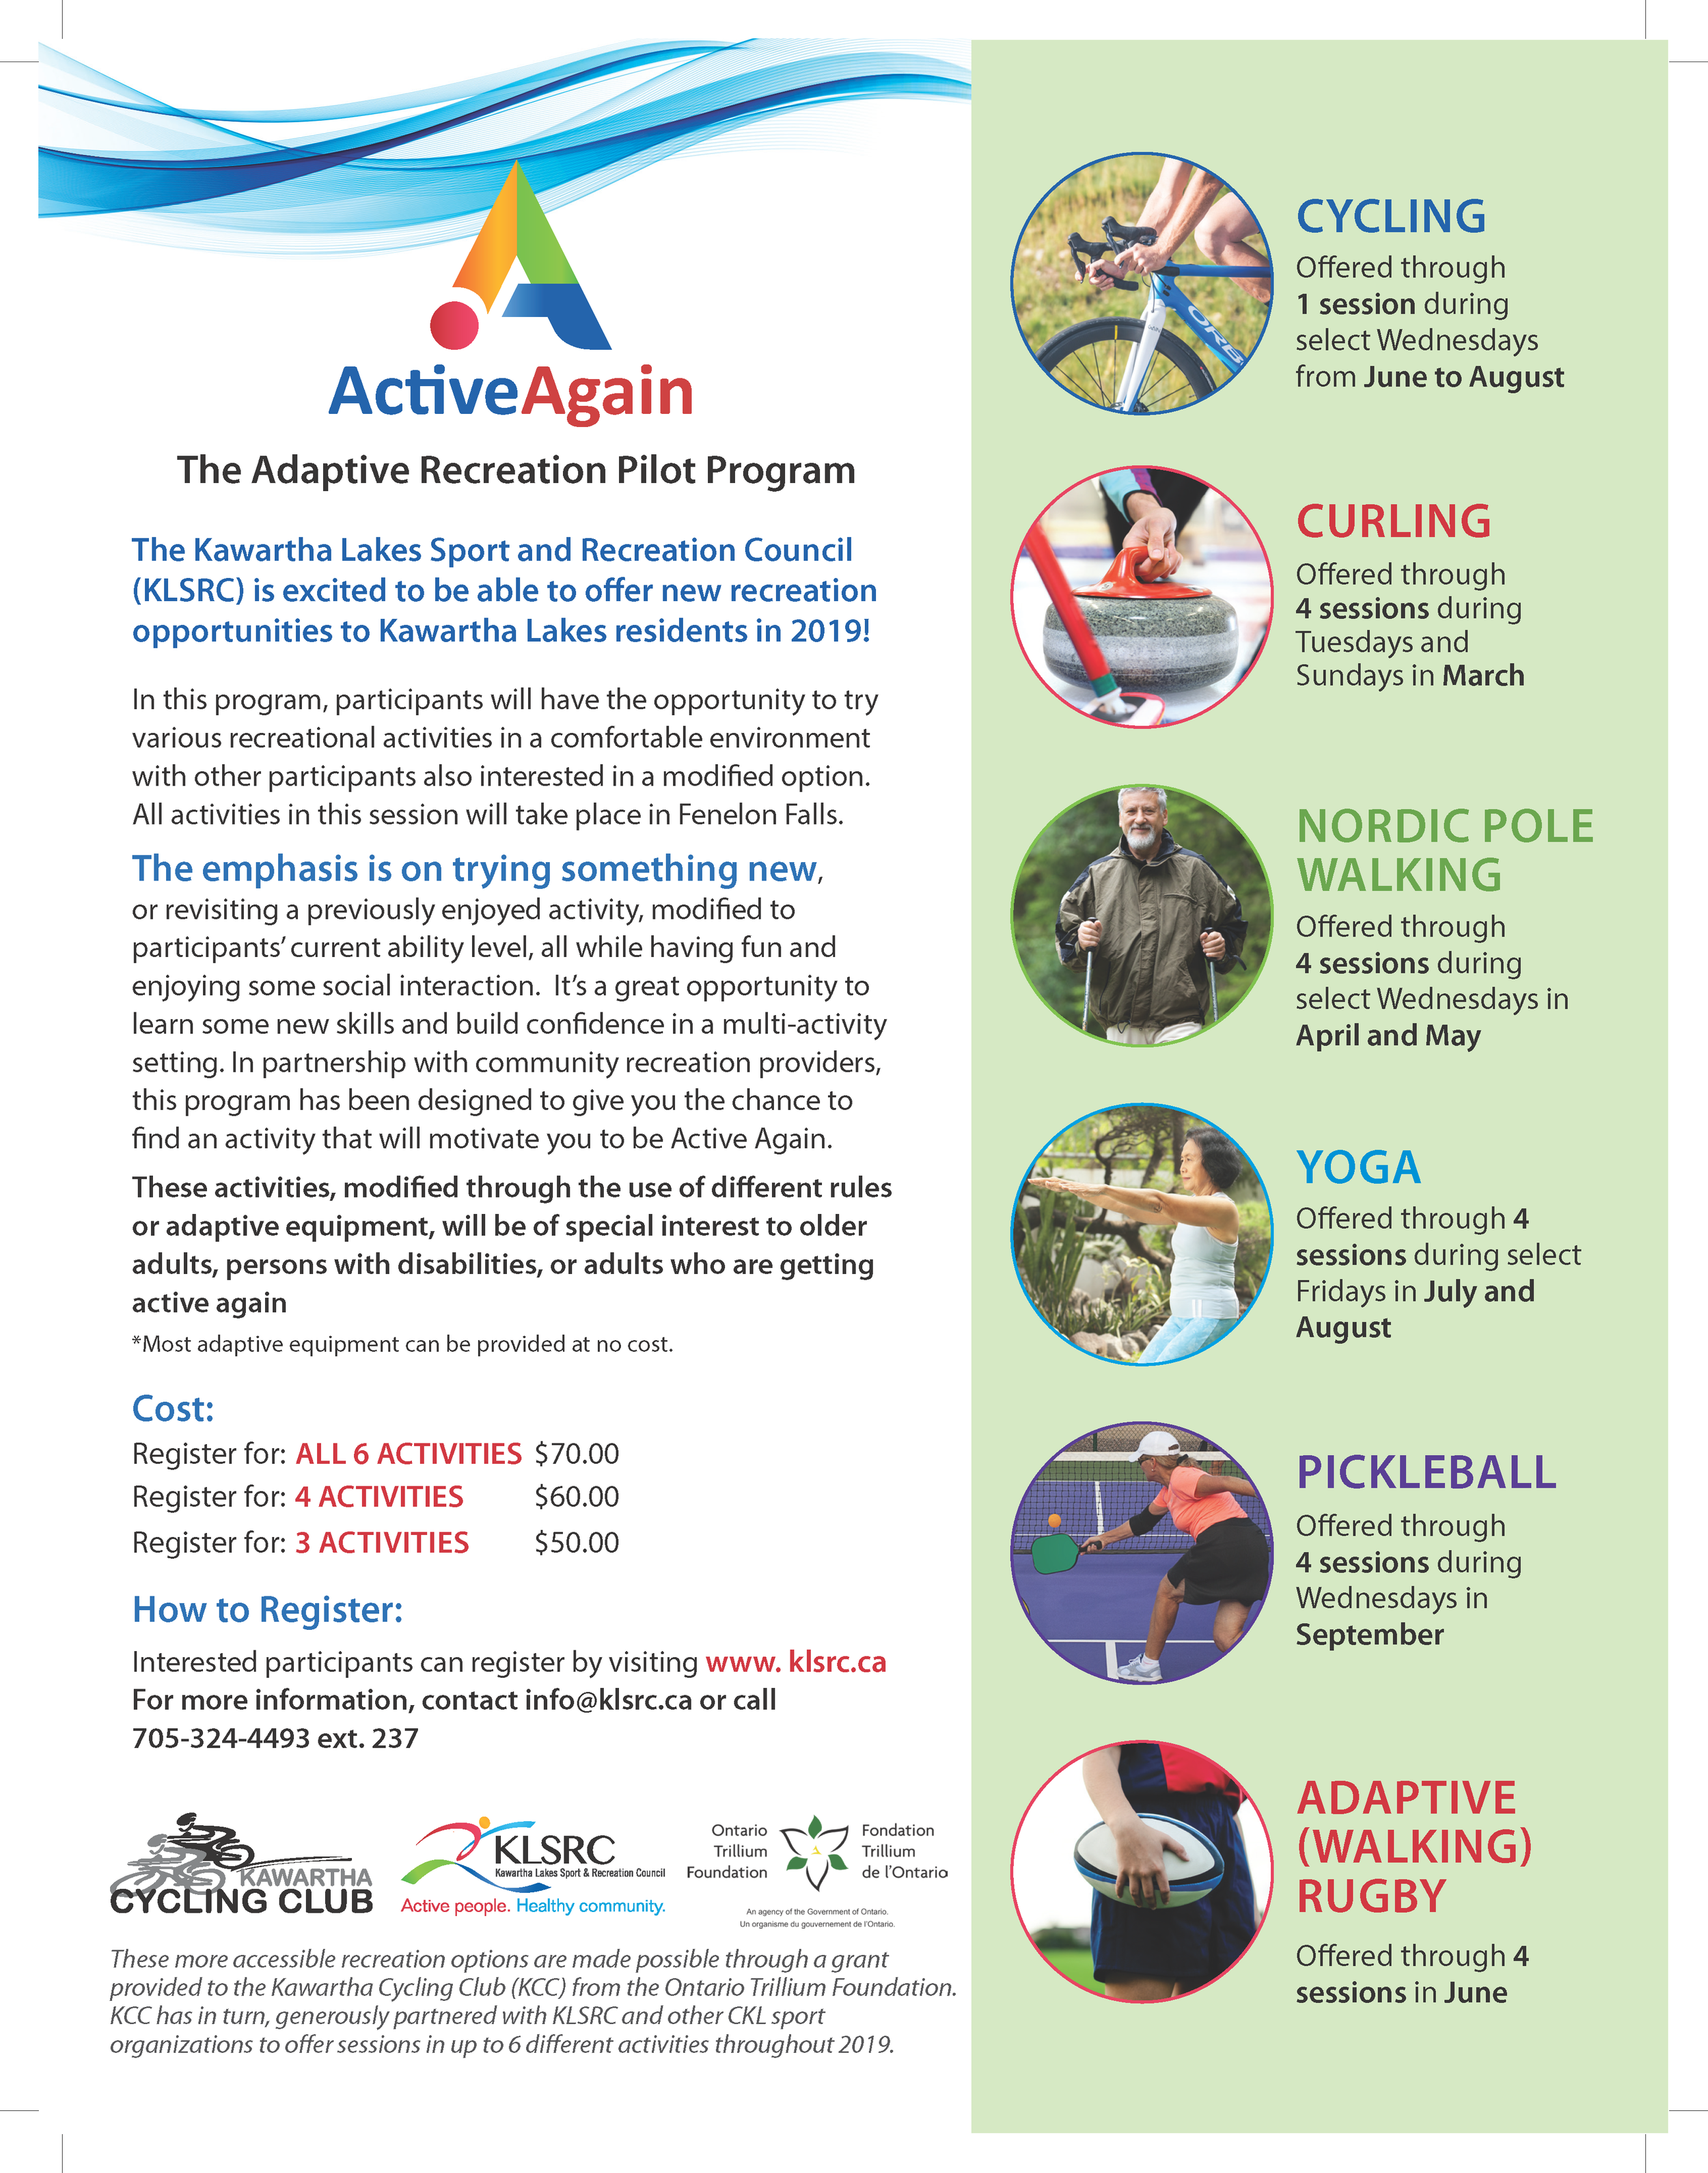 Active Again_Adaptive Recreation Pilot Program 2019.png